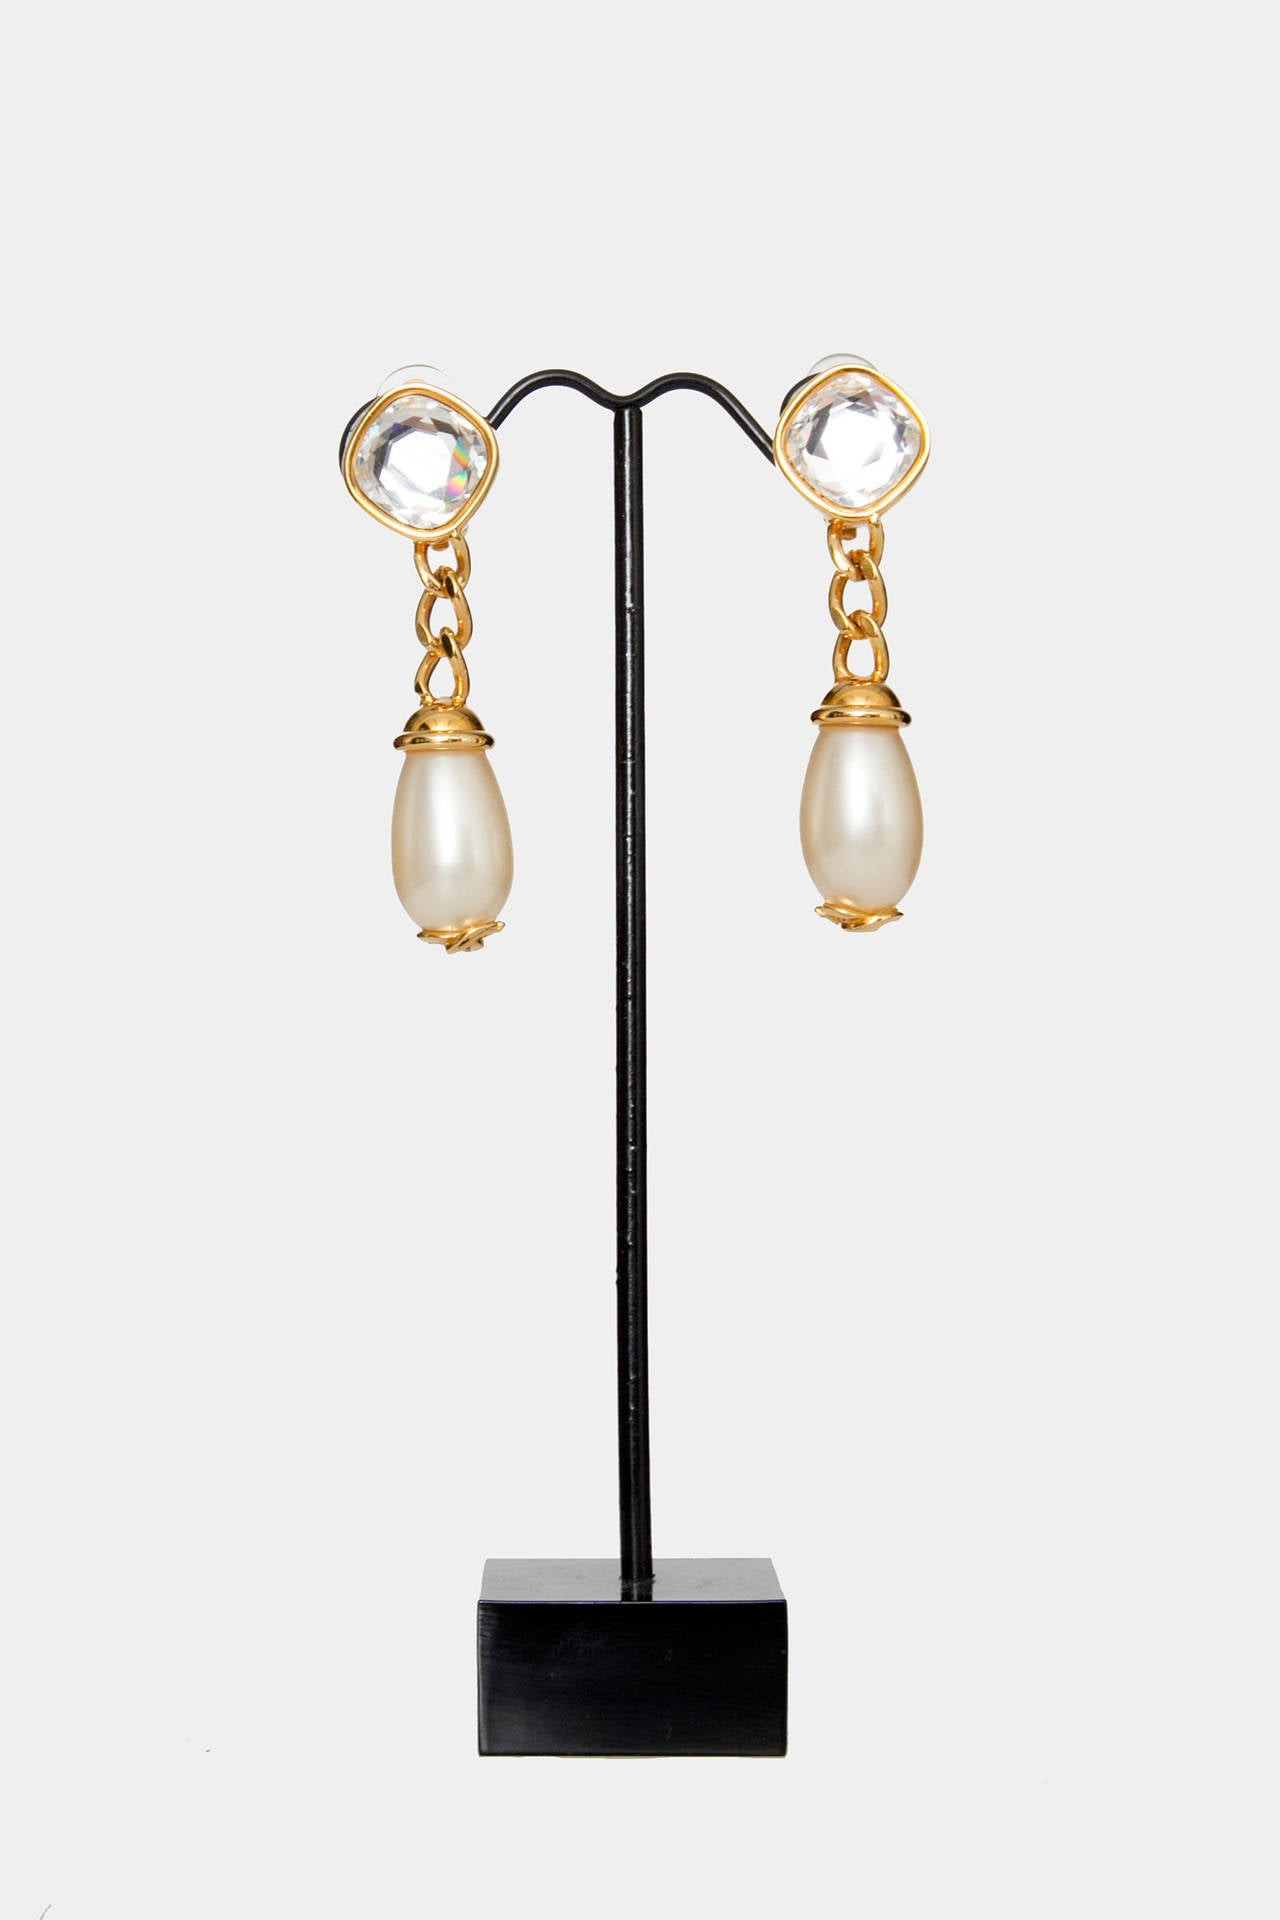 A Pair Of '97 Chanel Mother of Pearl Drop Earrings 2